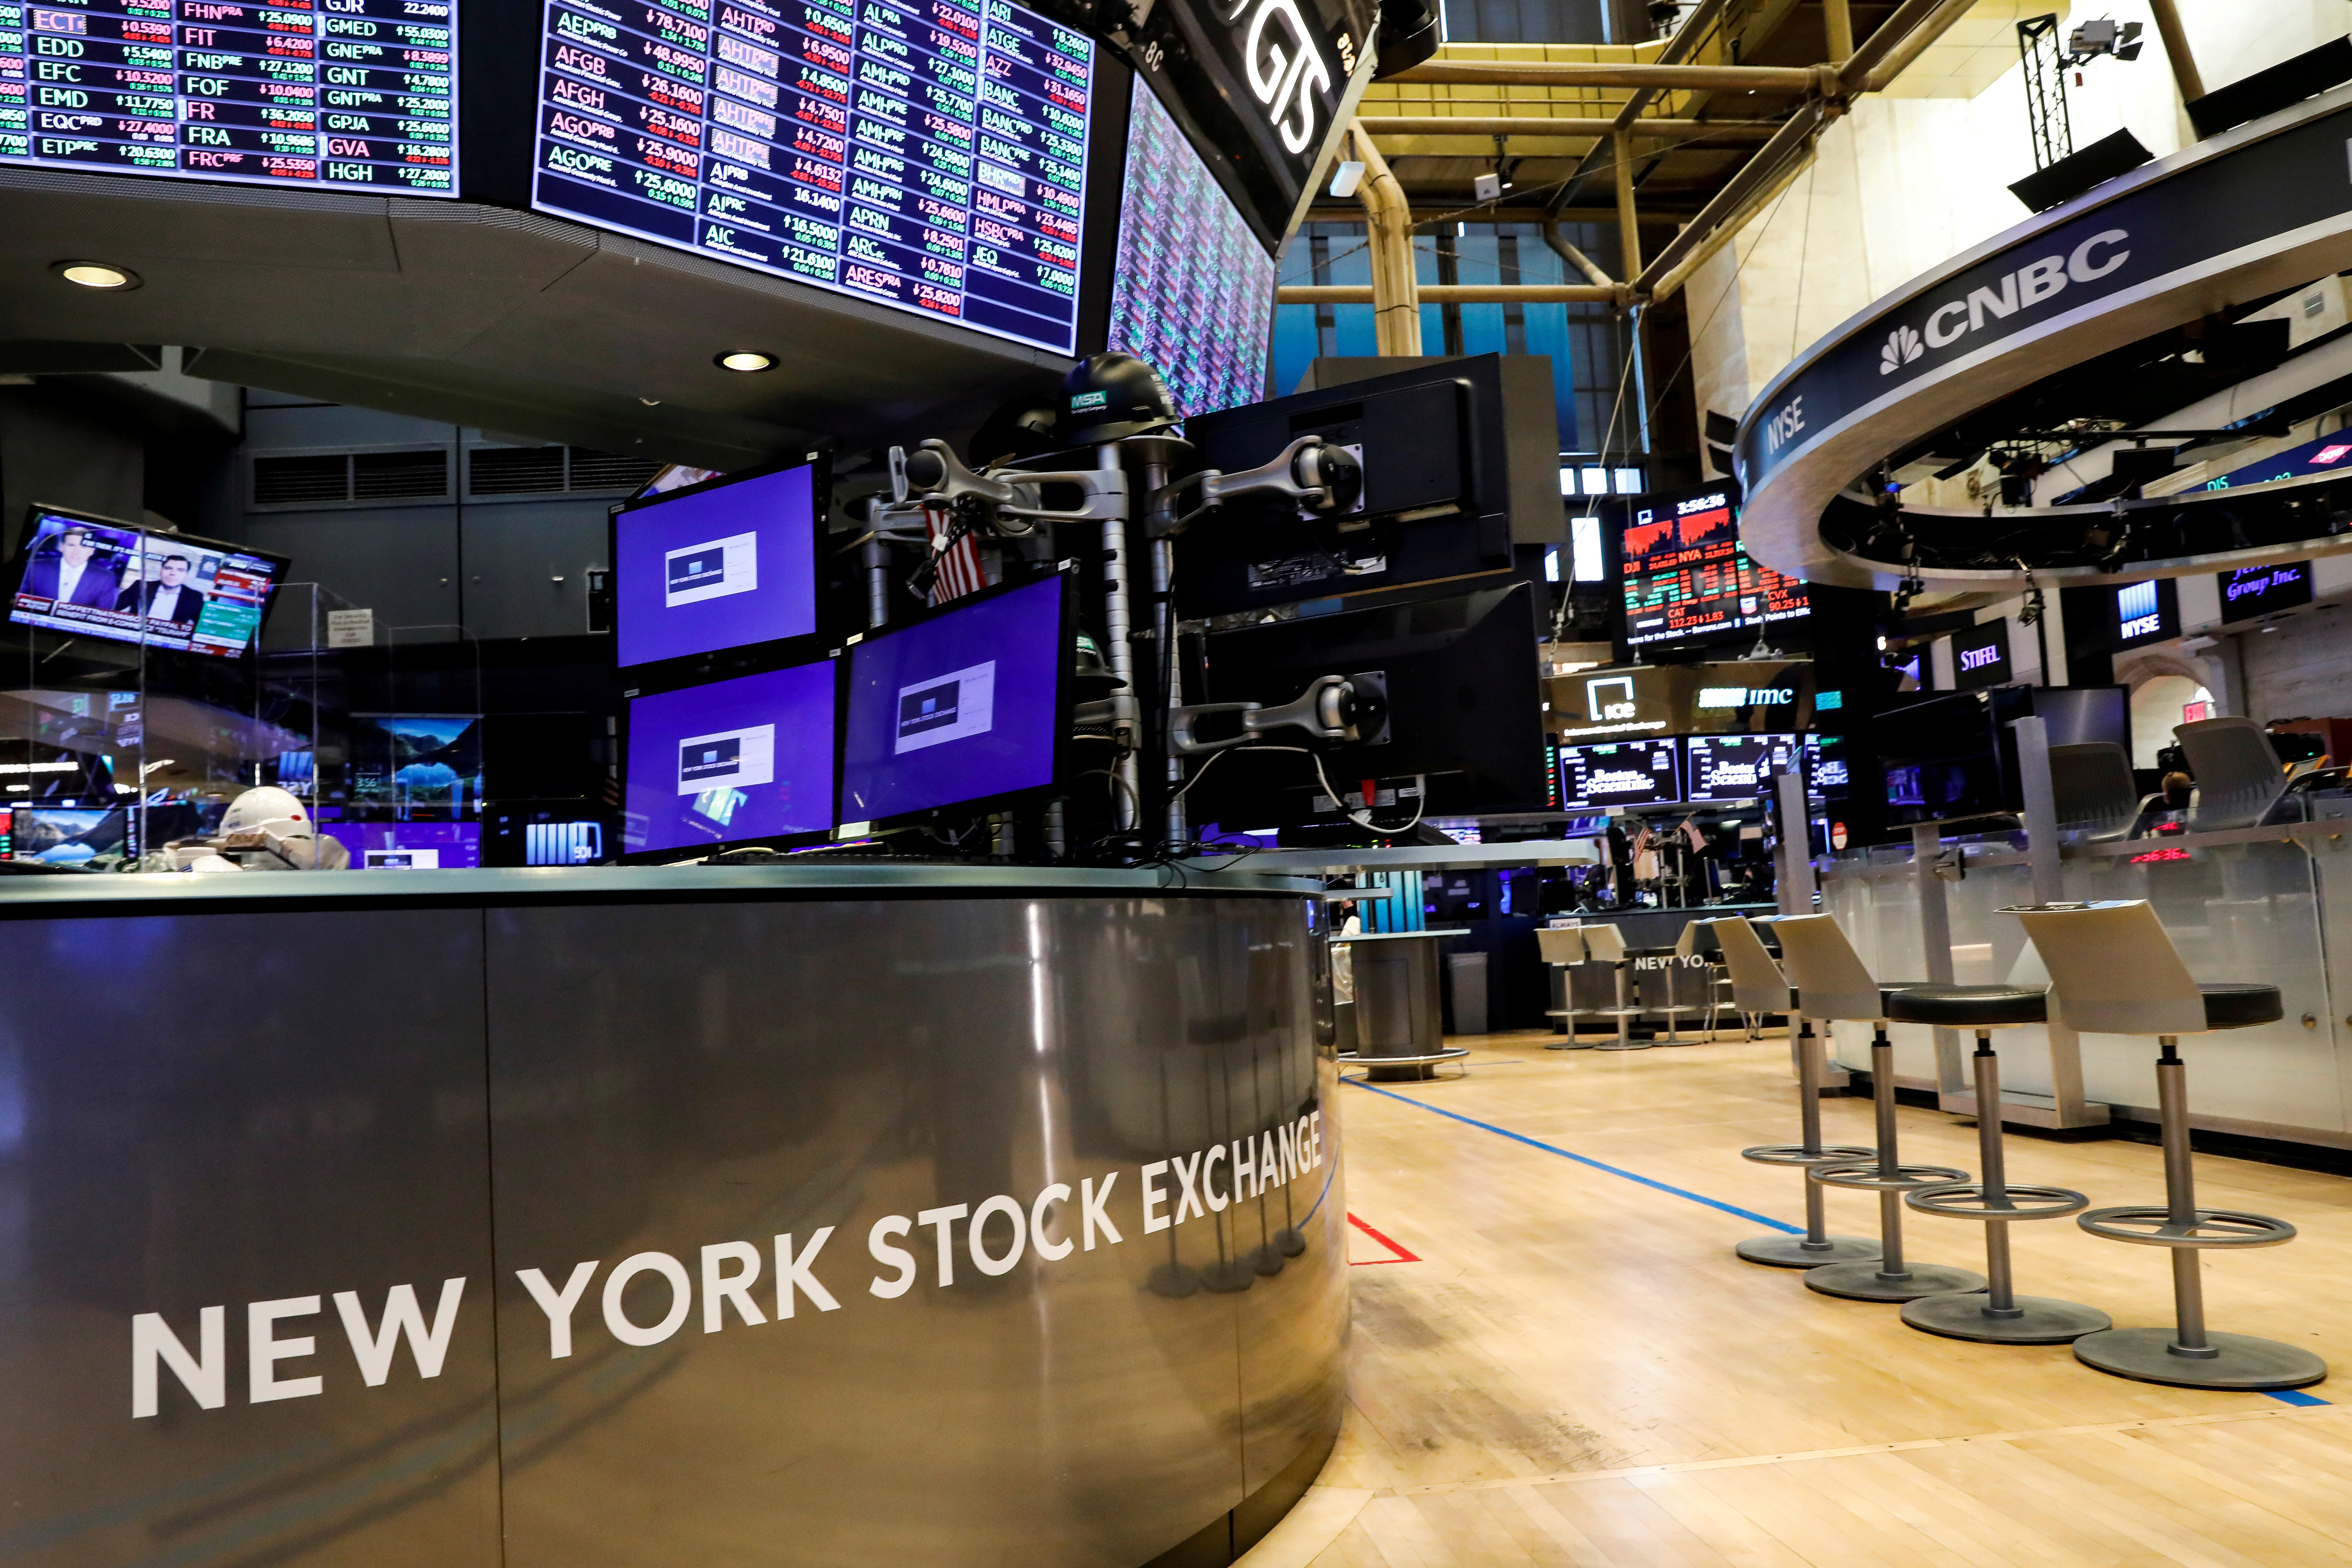 A nearly empty trading floor is seen at the New York Stock Exchange (NYSE) in New York, U.S., May 22, 2020. REUTERS/Brendan McDermid